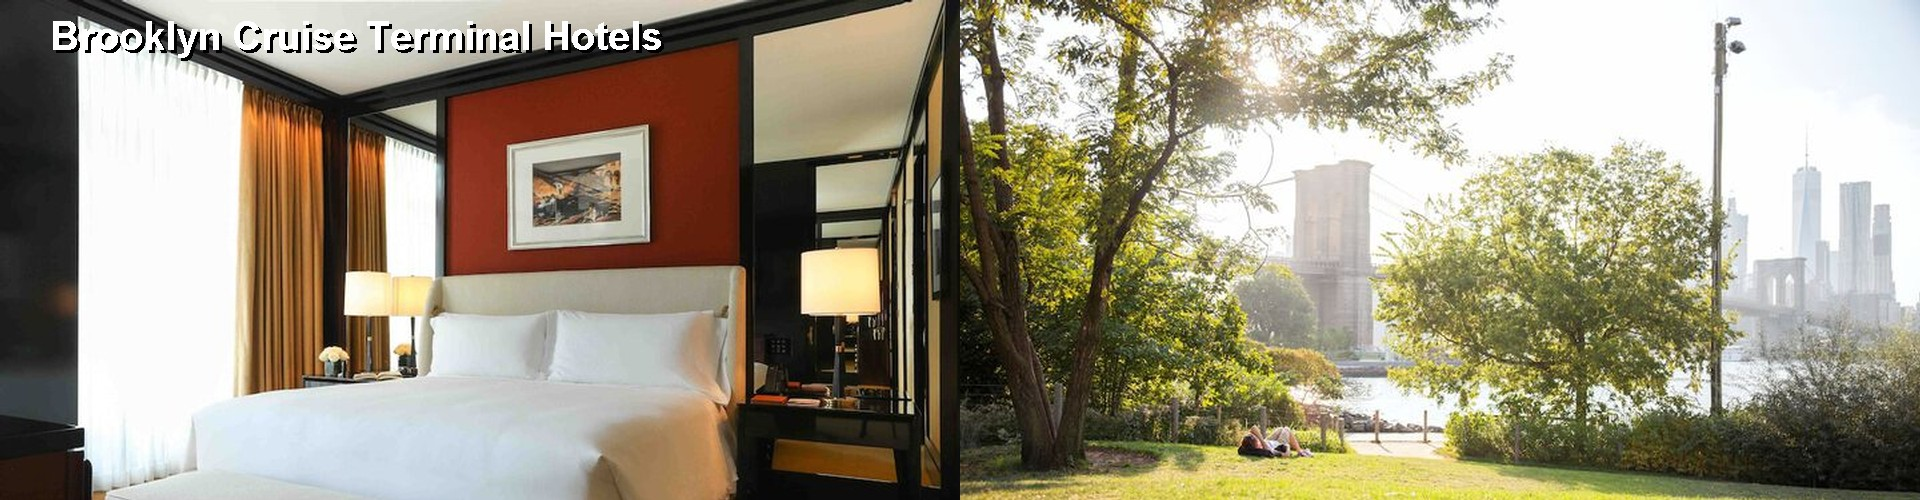 5 Best Hotels near Brooklyn Cruise Terminal